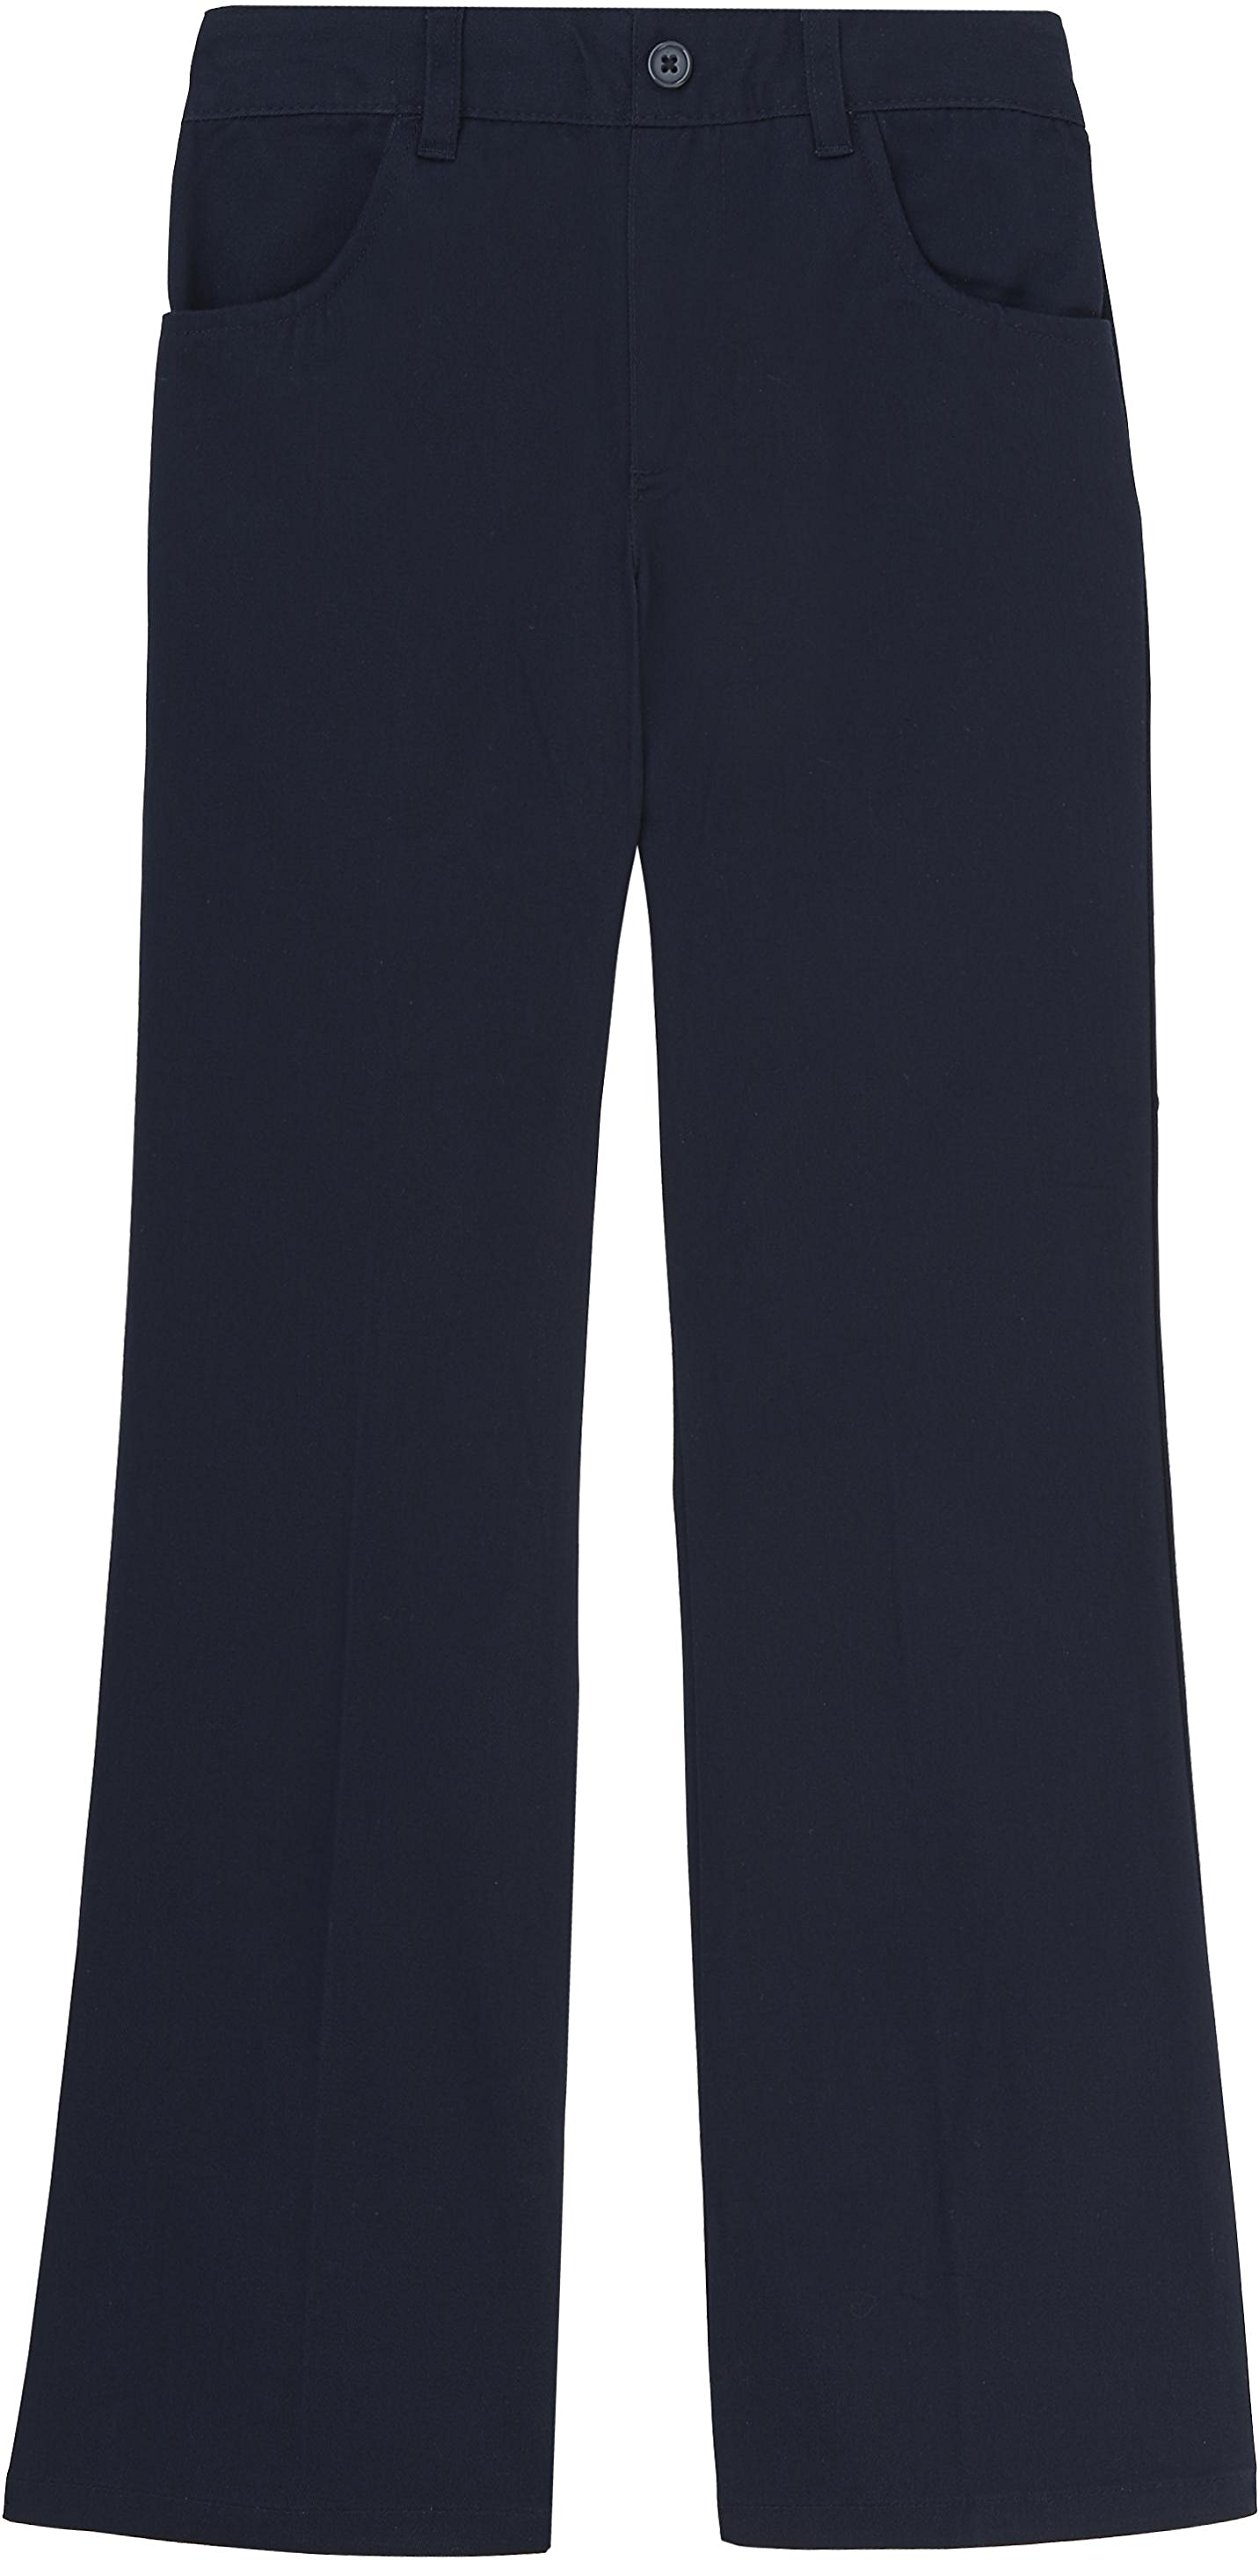 French Toast School Uniform Girls Pull-On Pants, Navy, 4T